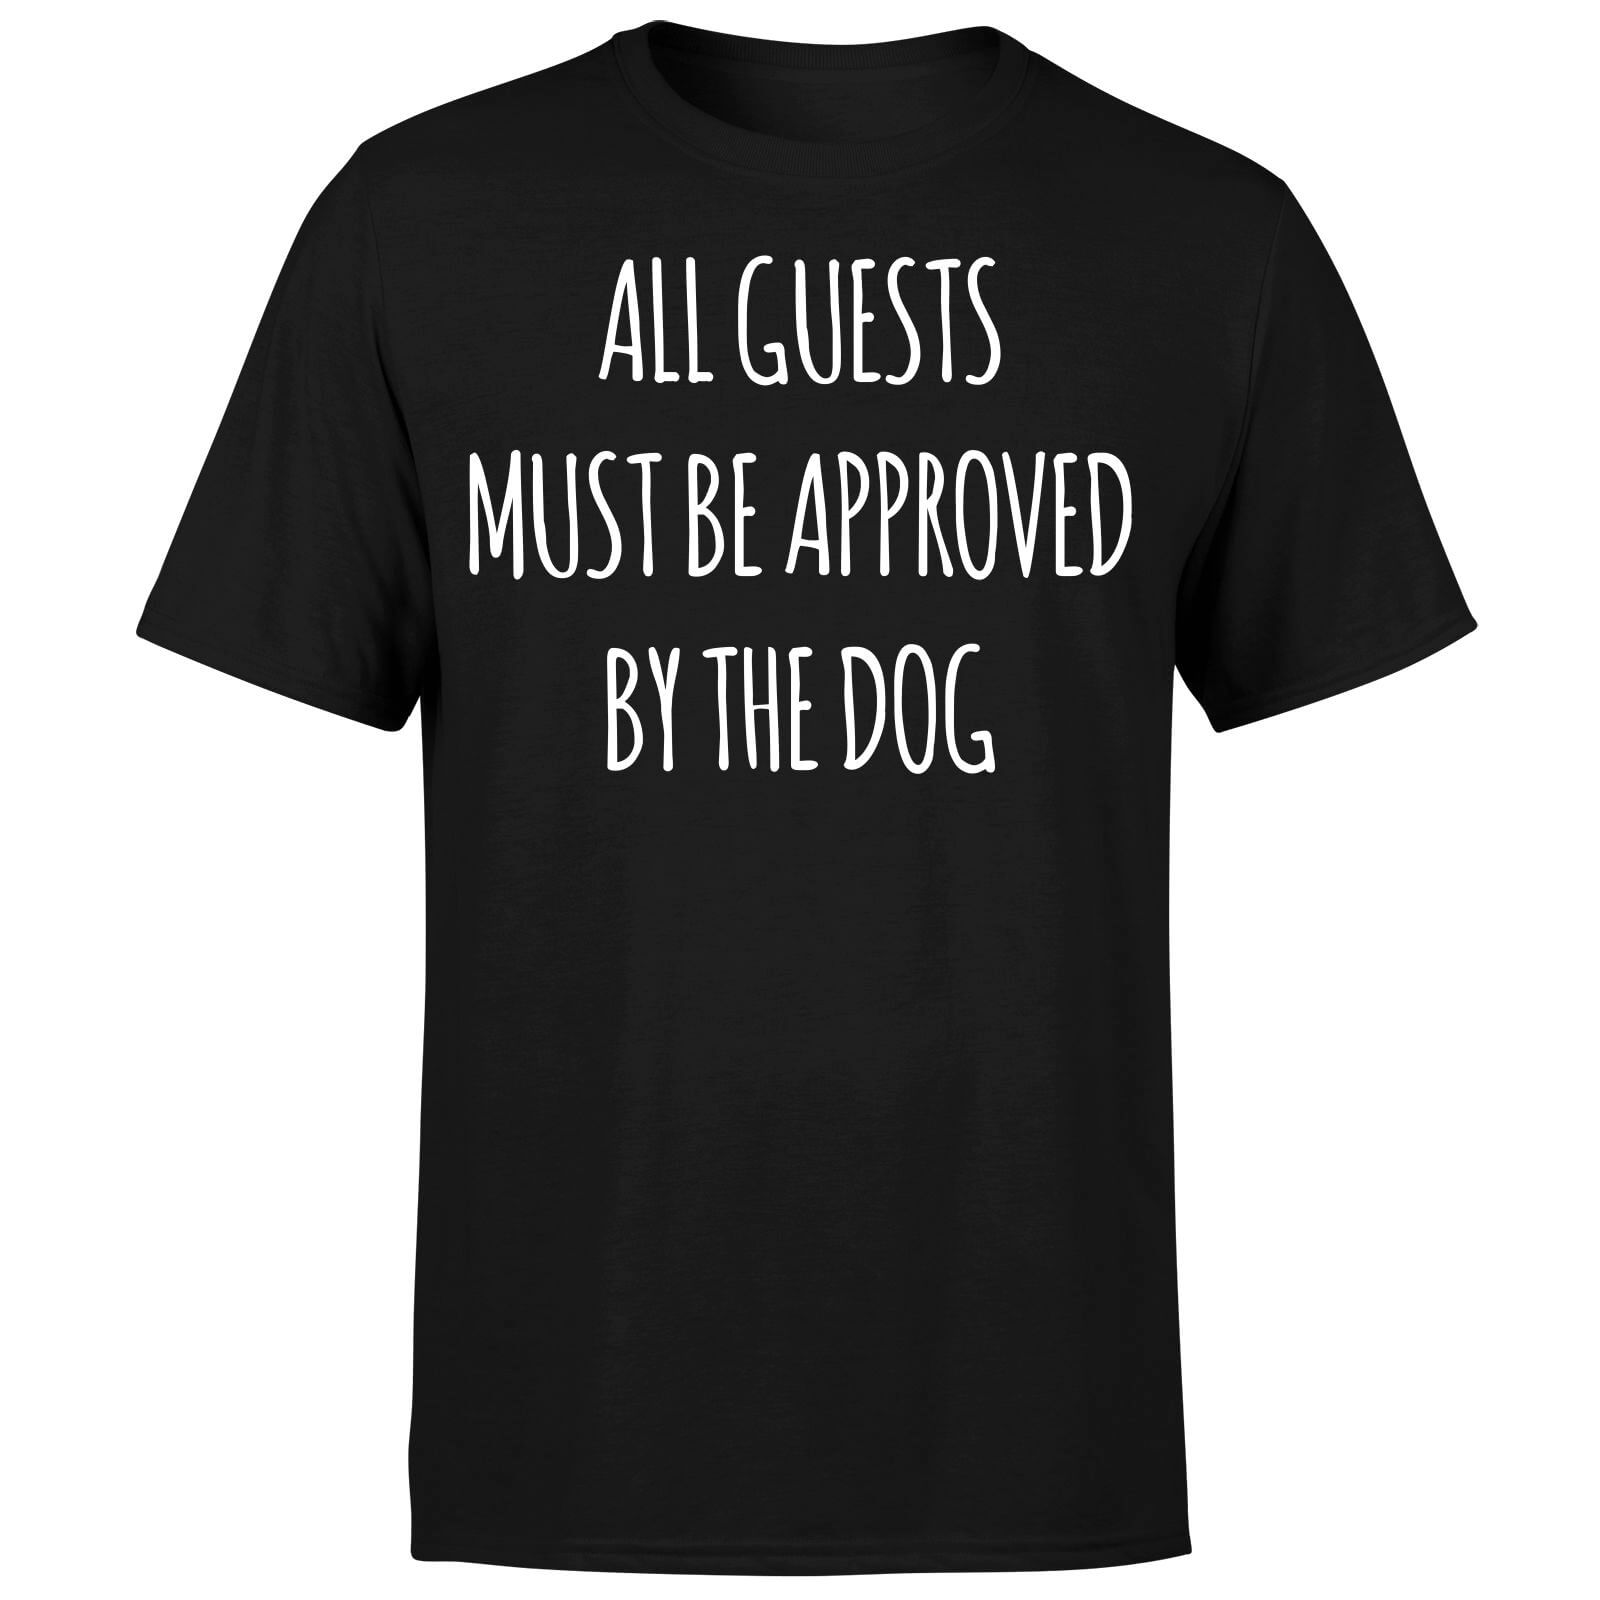 All Guests Must Be Approved By The Dog T-Shirt - Black